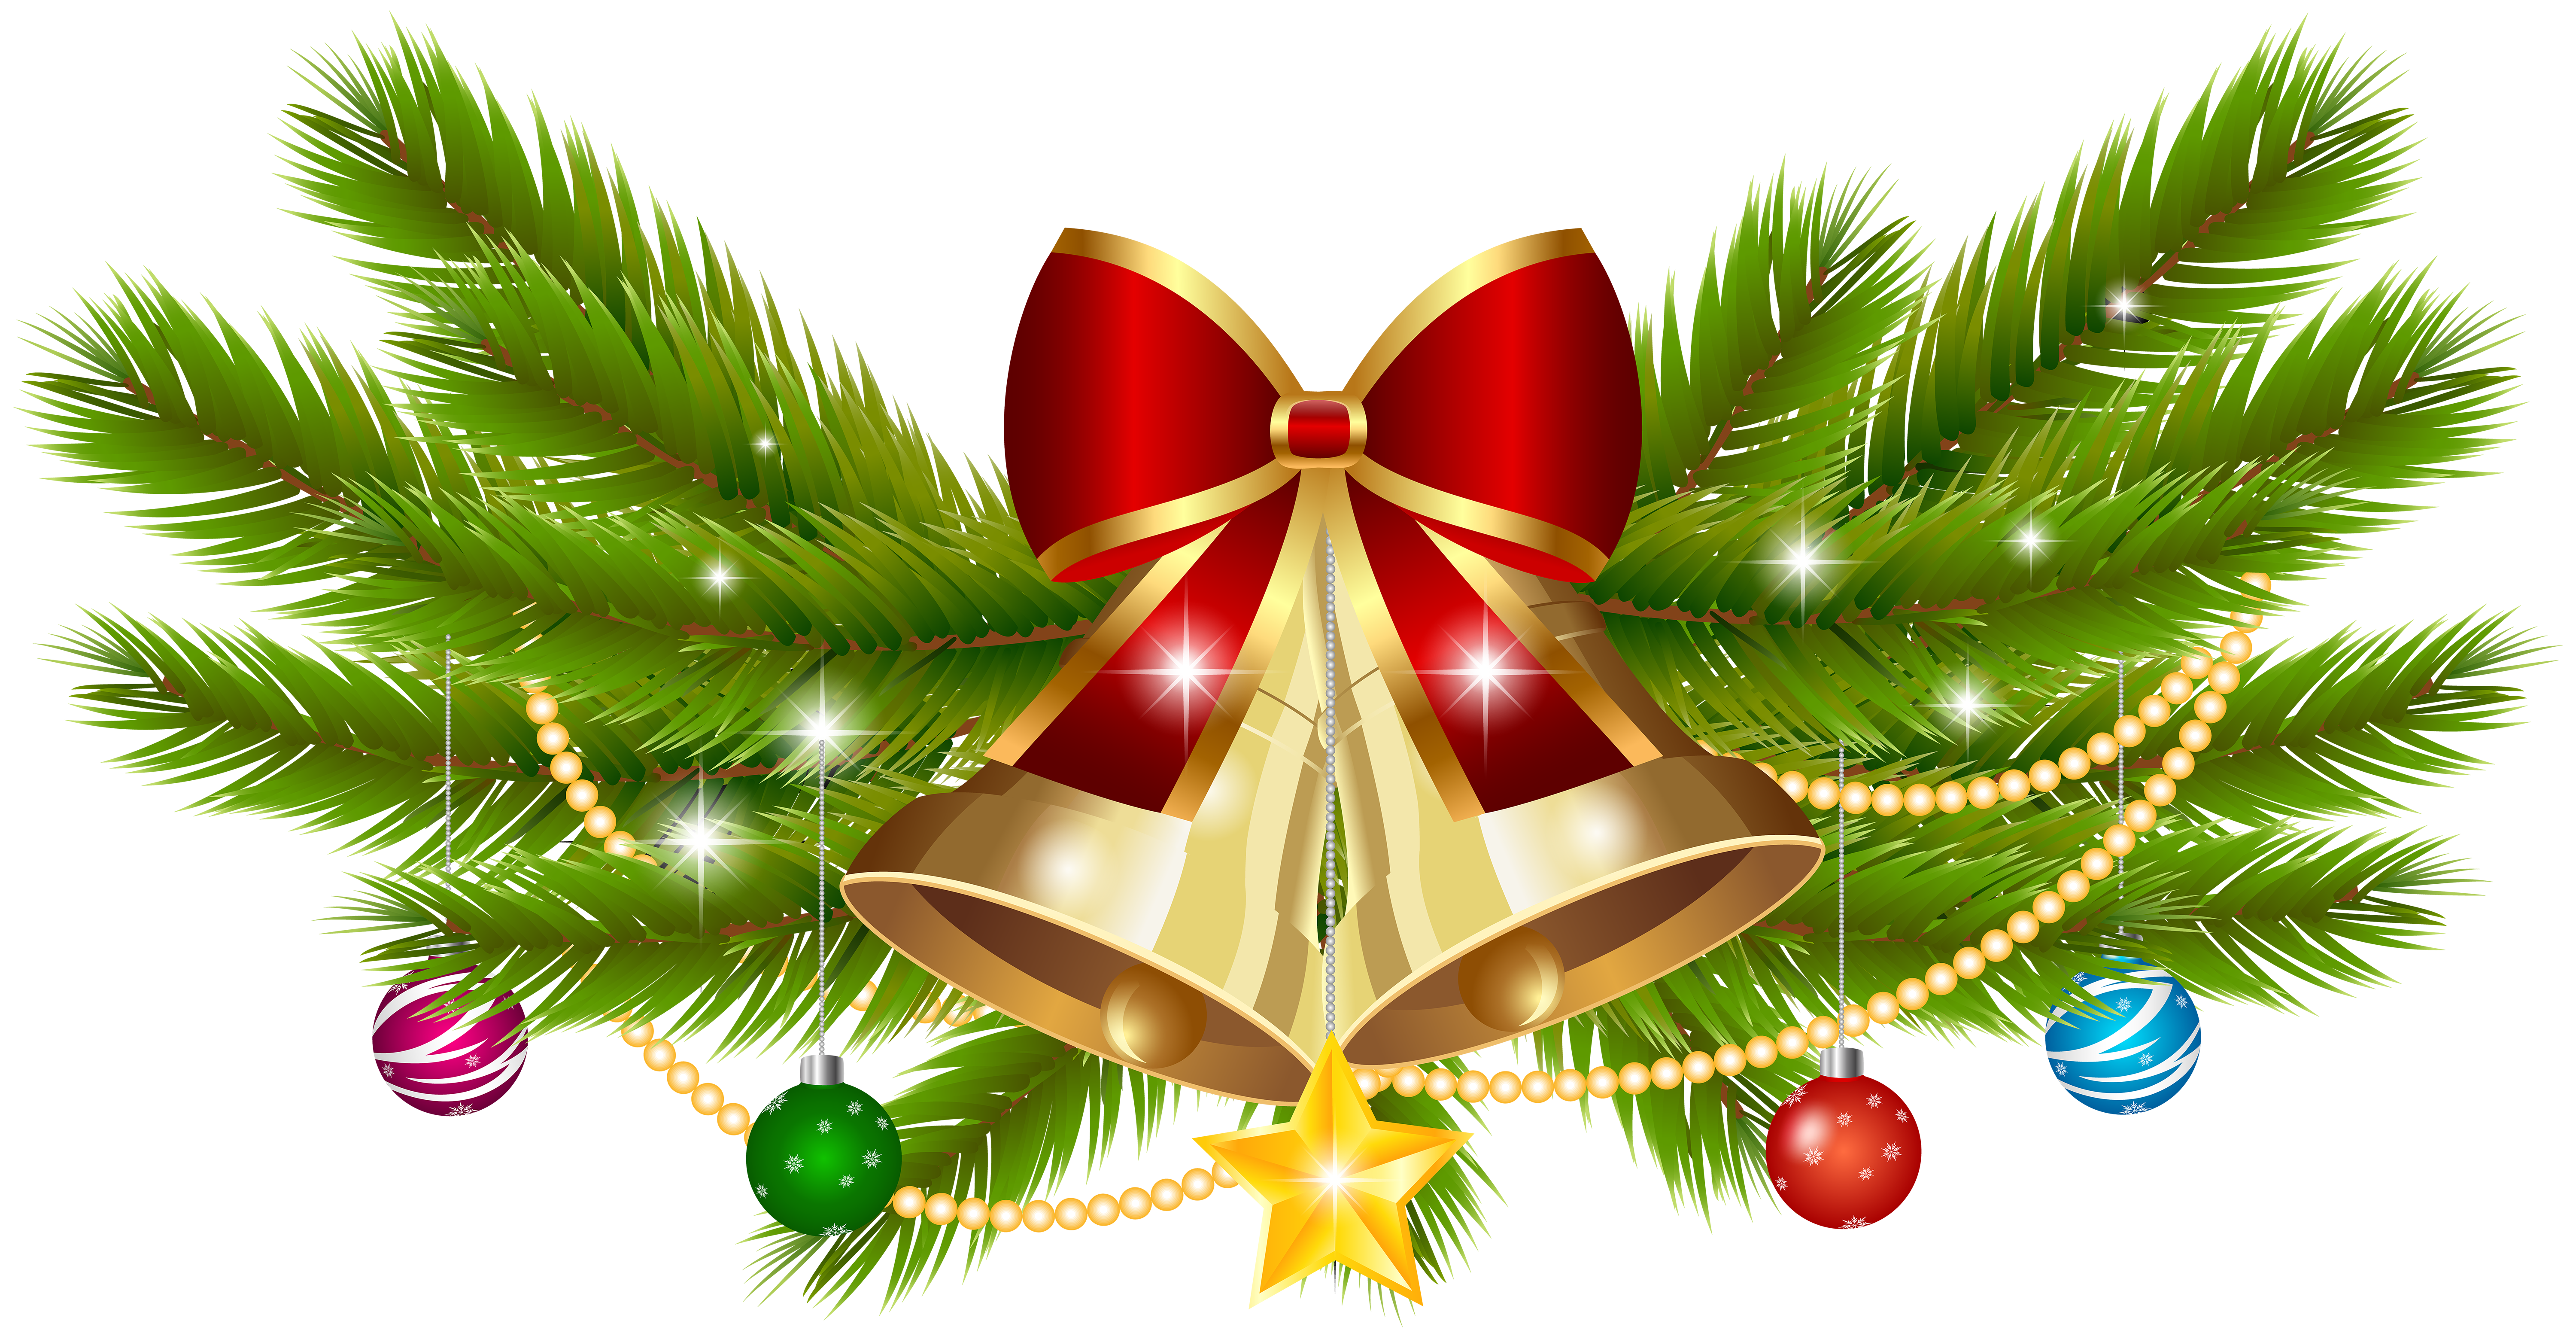 Christmas Bells Clipart.Christmas Bell Transparent Png Clipart Free Download Ywd